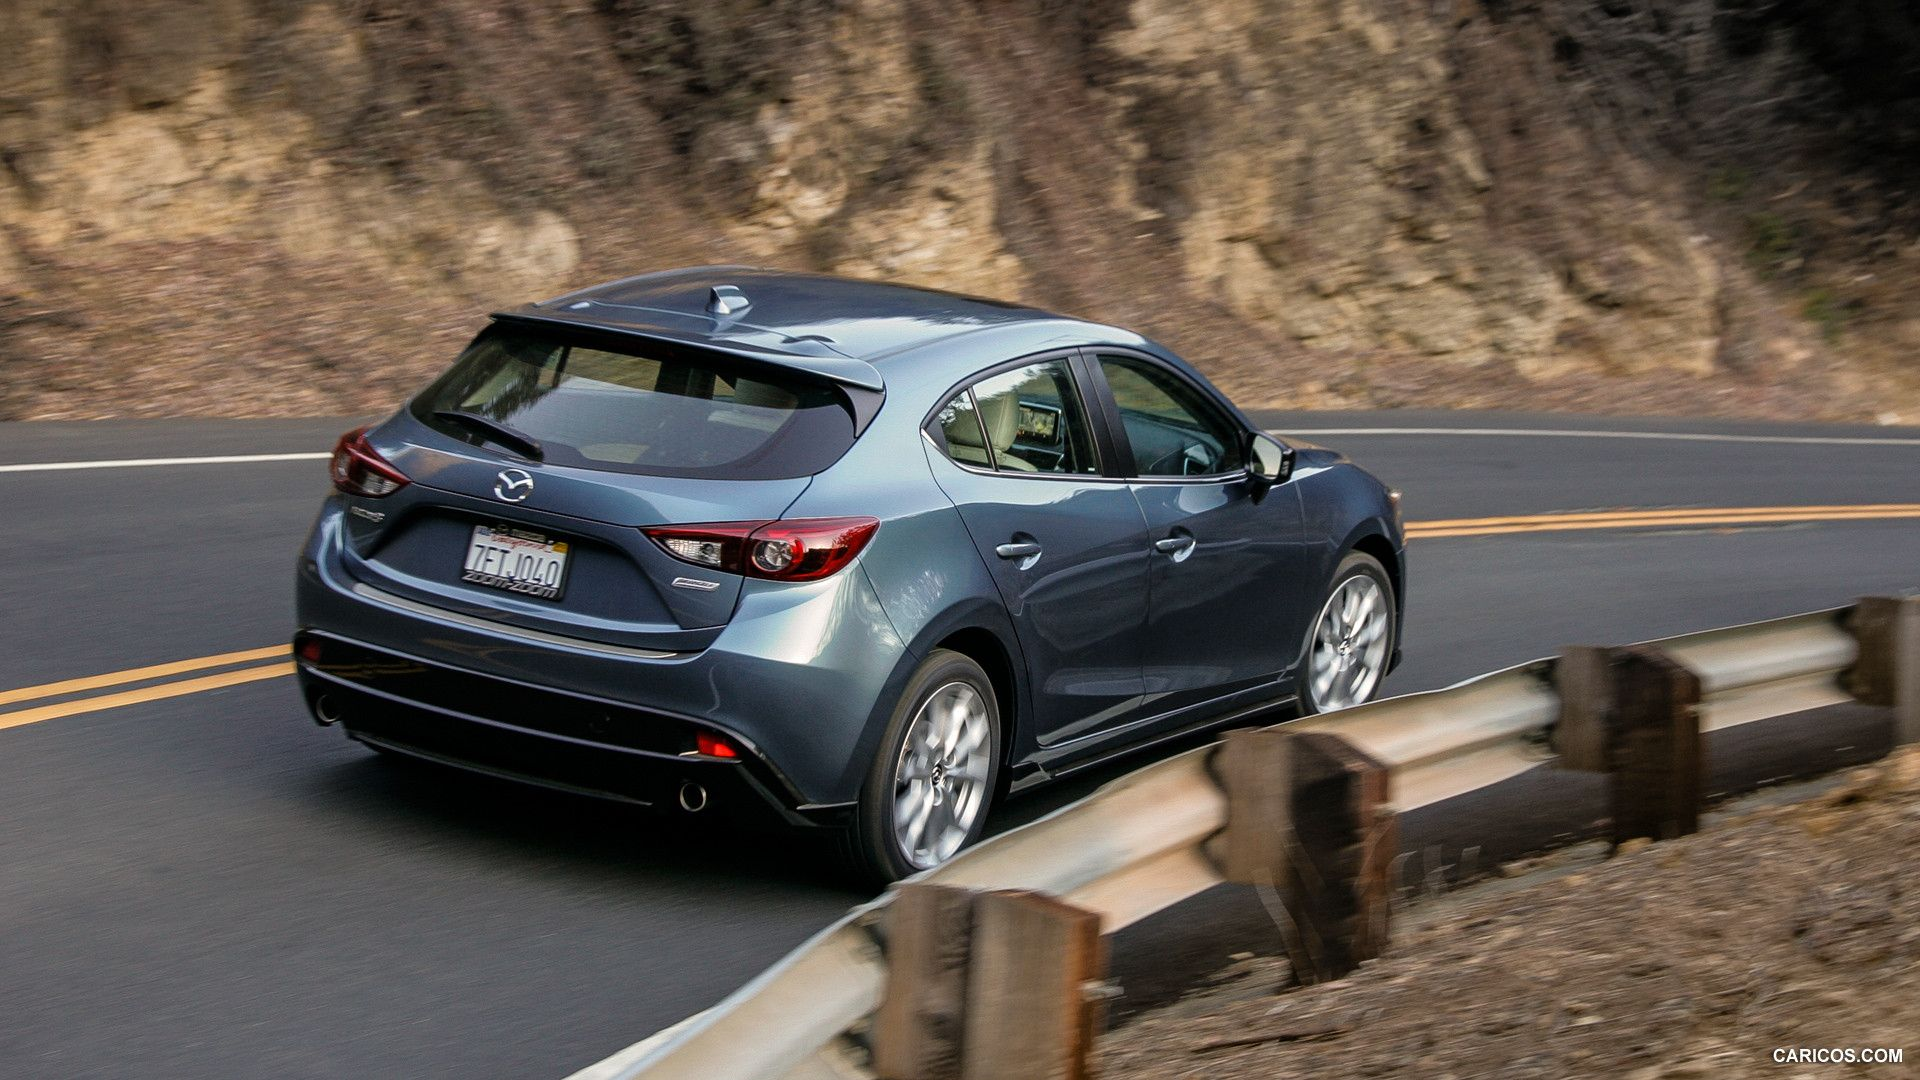 2015 mazda 3 5d s touring 6mt blue reflex rear hd